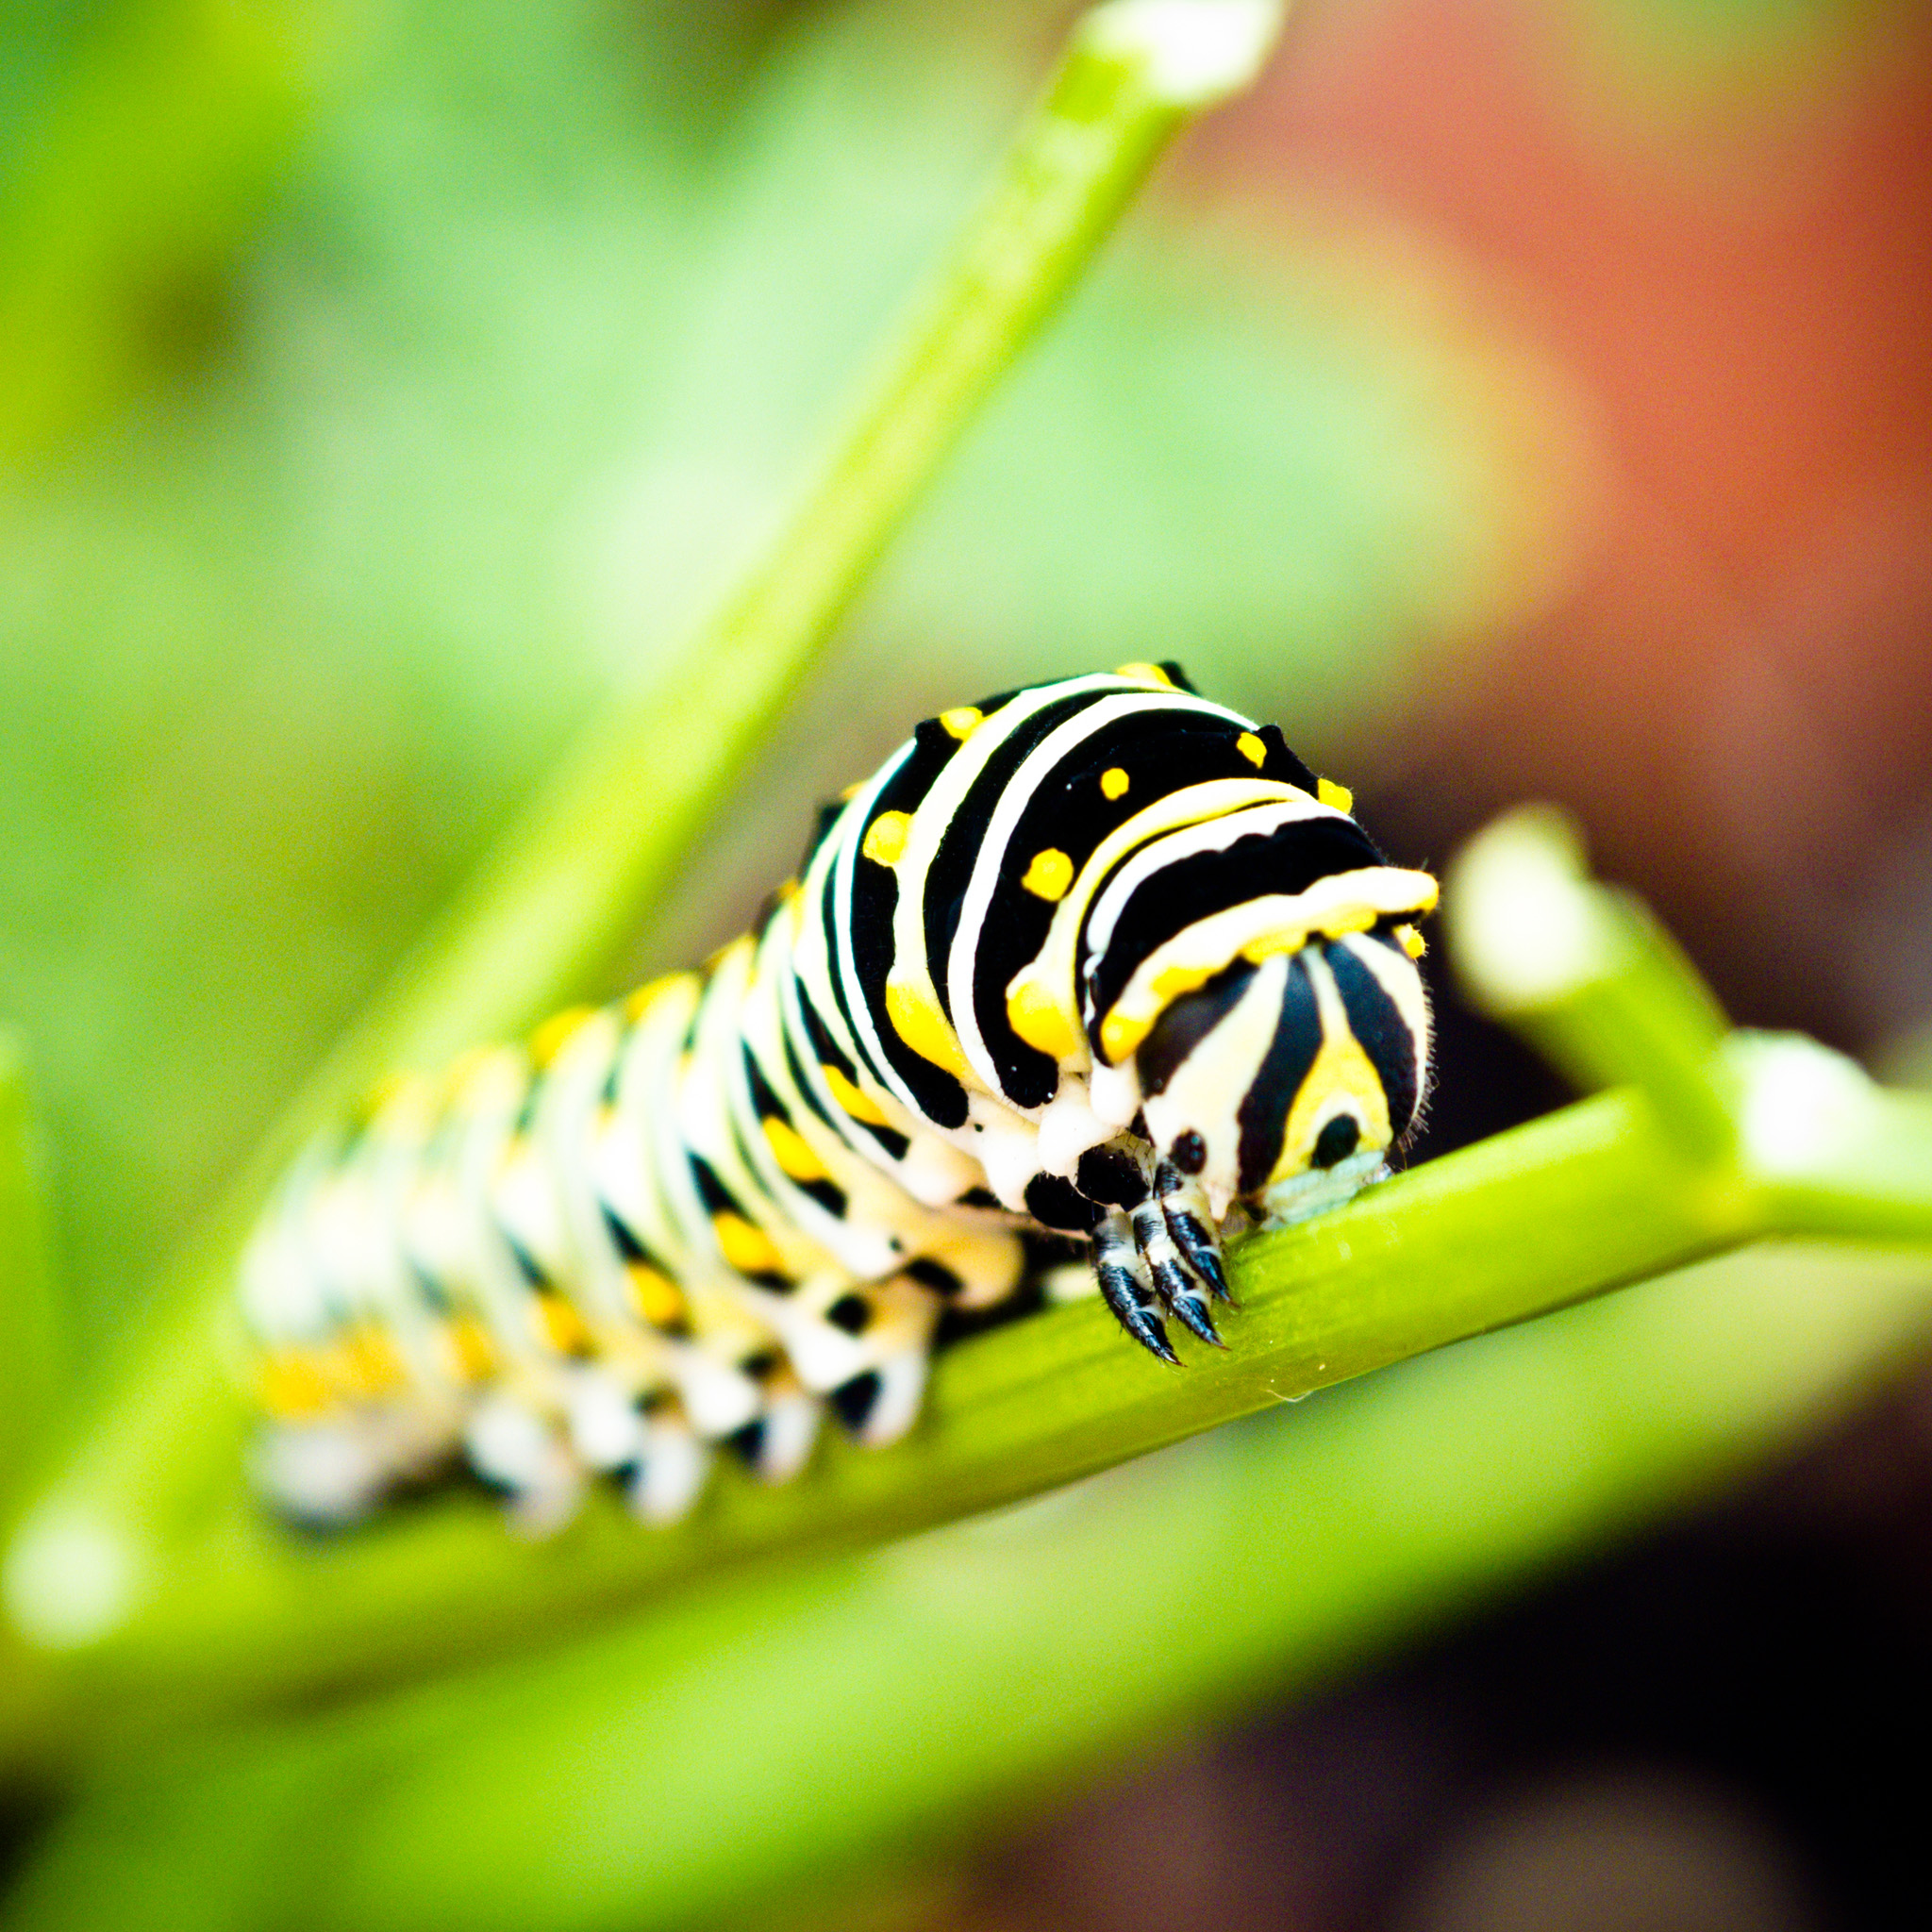 jorge quinteros - caterpillar ipad wallpaper